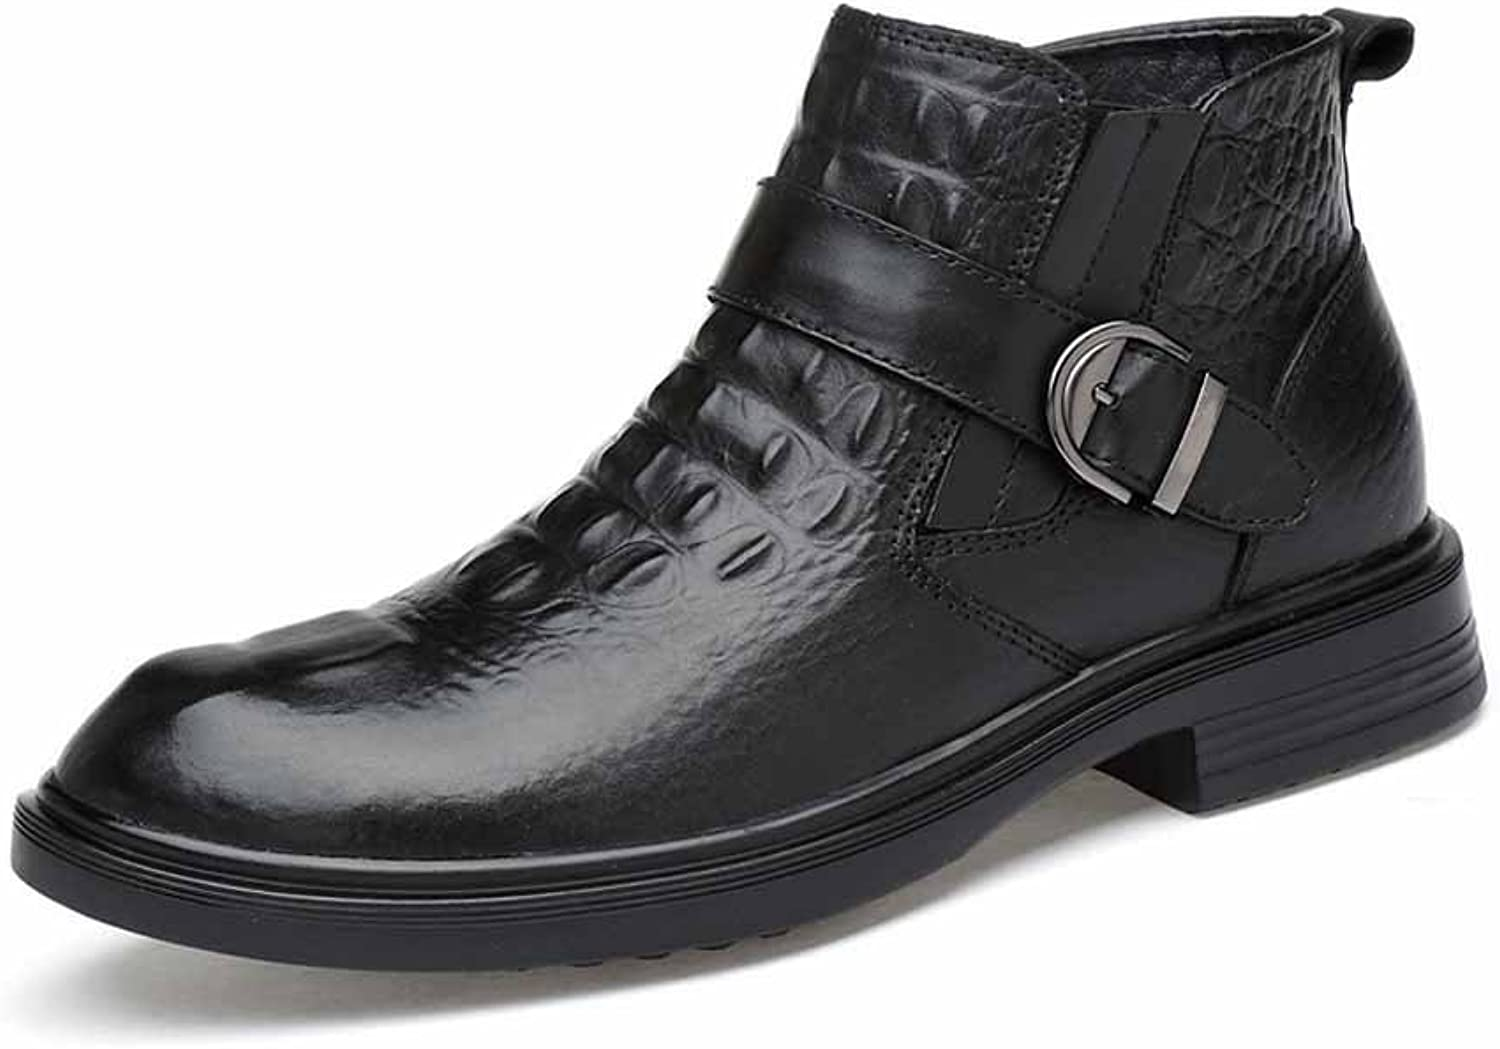 GLSHI Men Martin Boots Fashionable Buckle Ankle Boots British Leather Boots Black Large Size